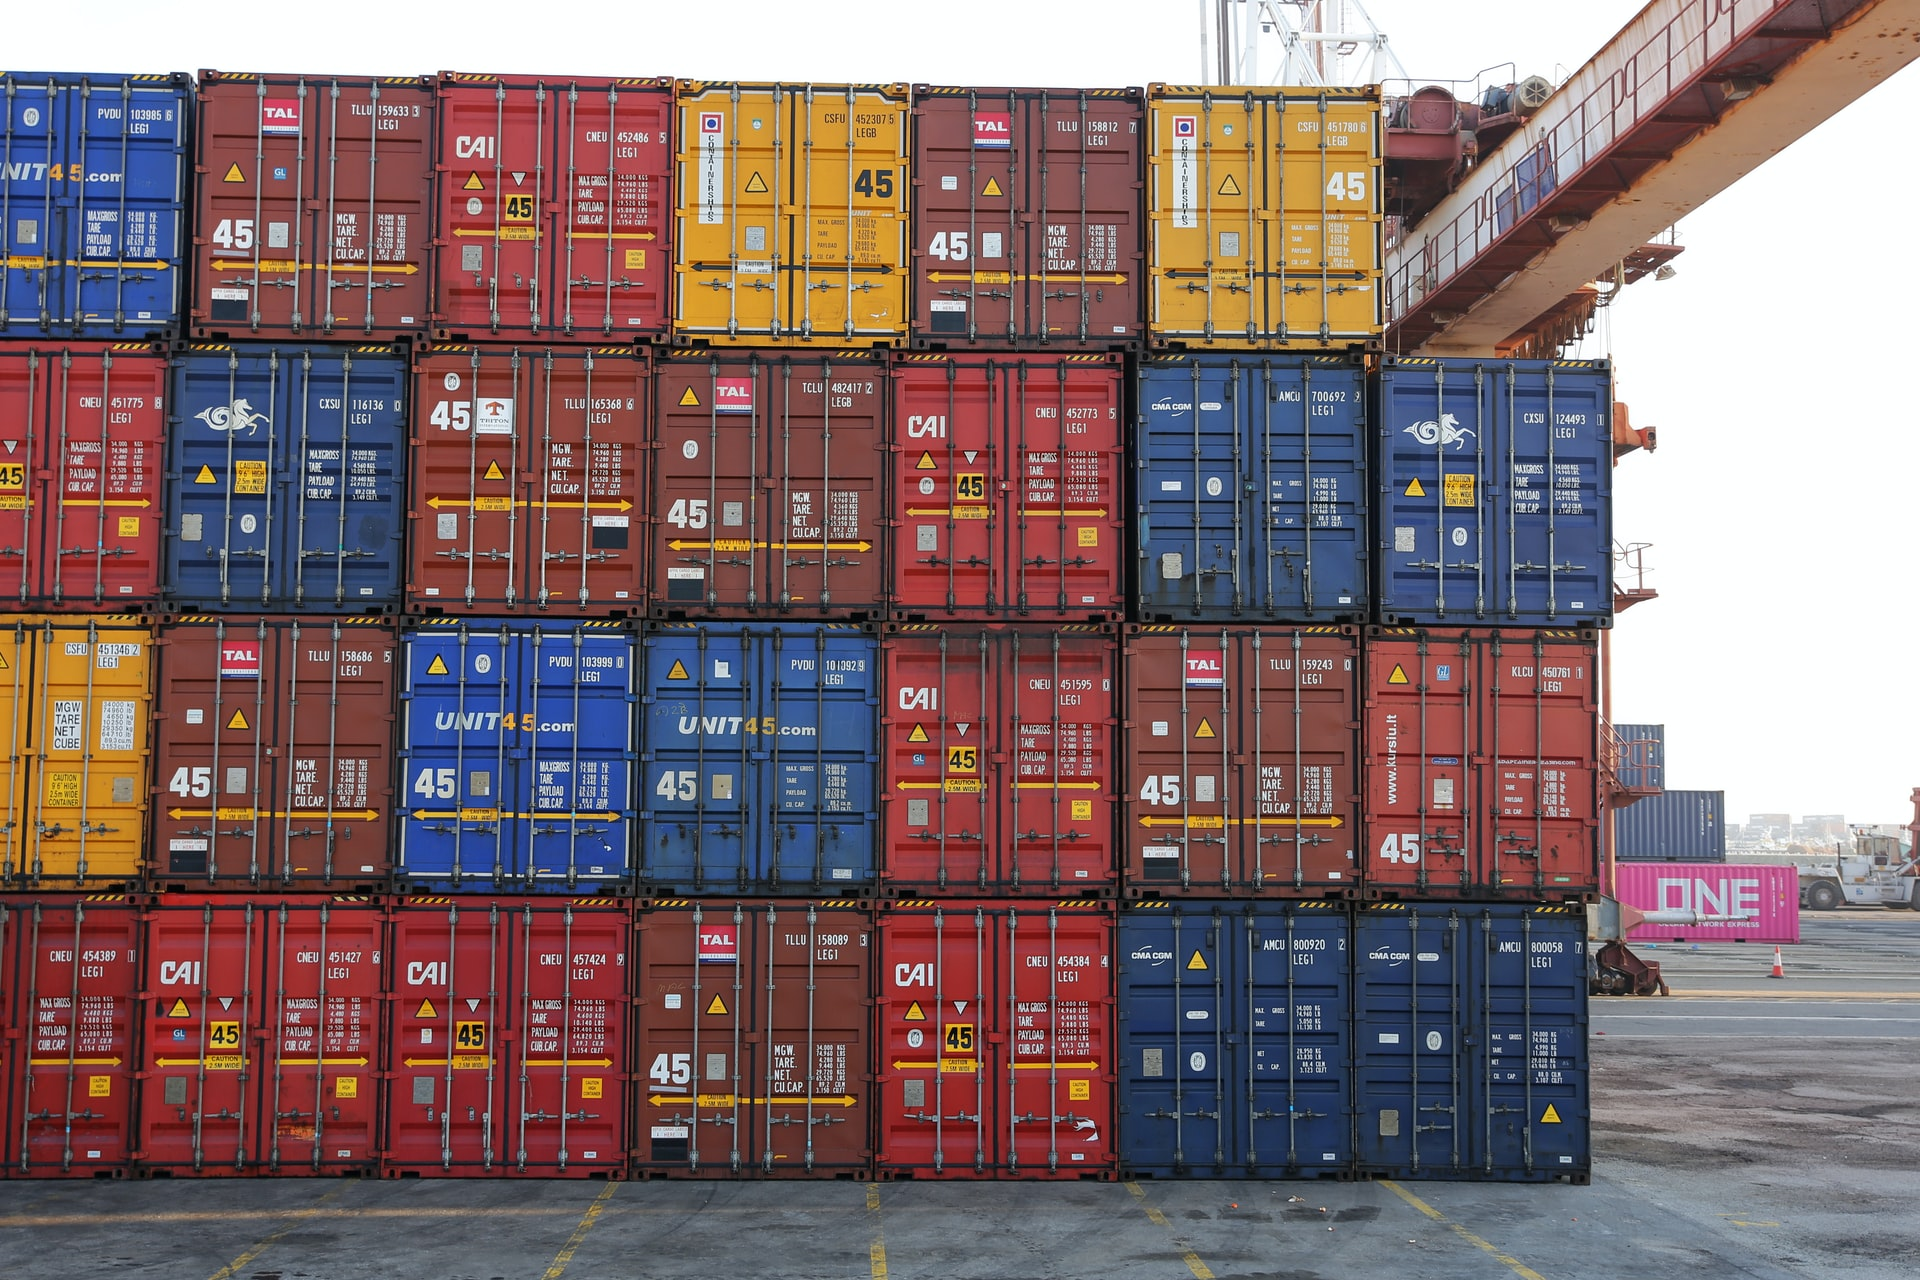 Foreign Trade Deficit Worsens to N2.39 trillion amid Further Increase in Import Bill in Q3 2020 brandspurng1